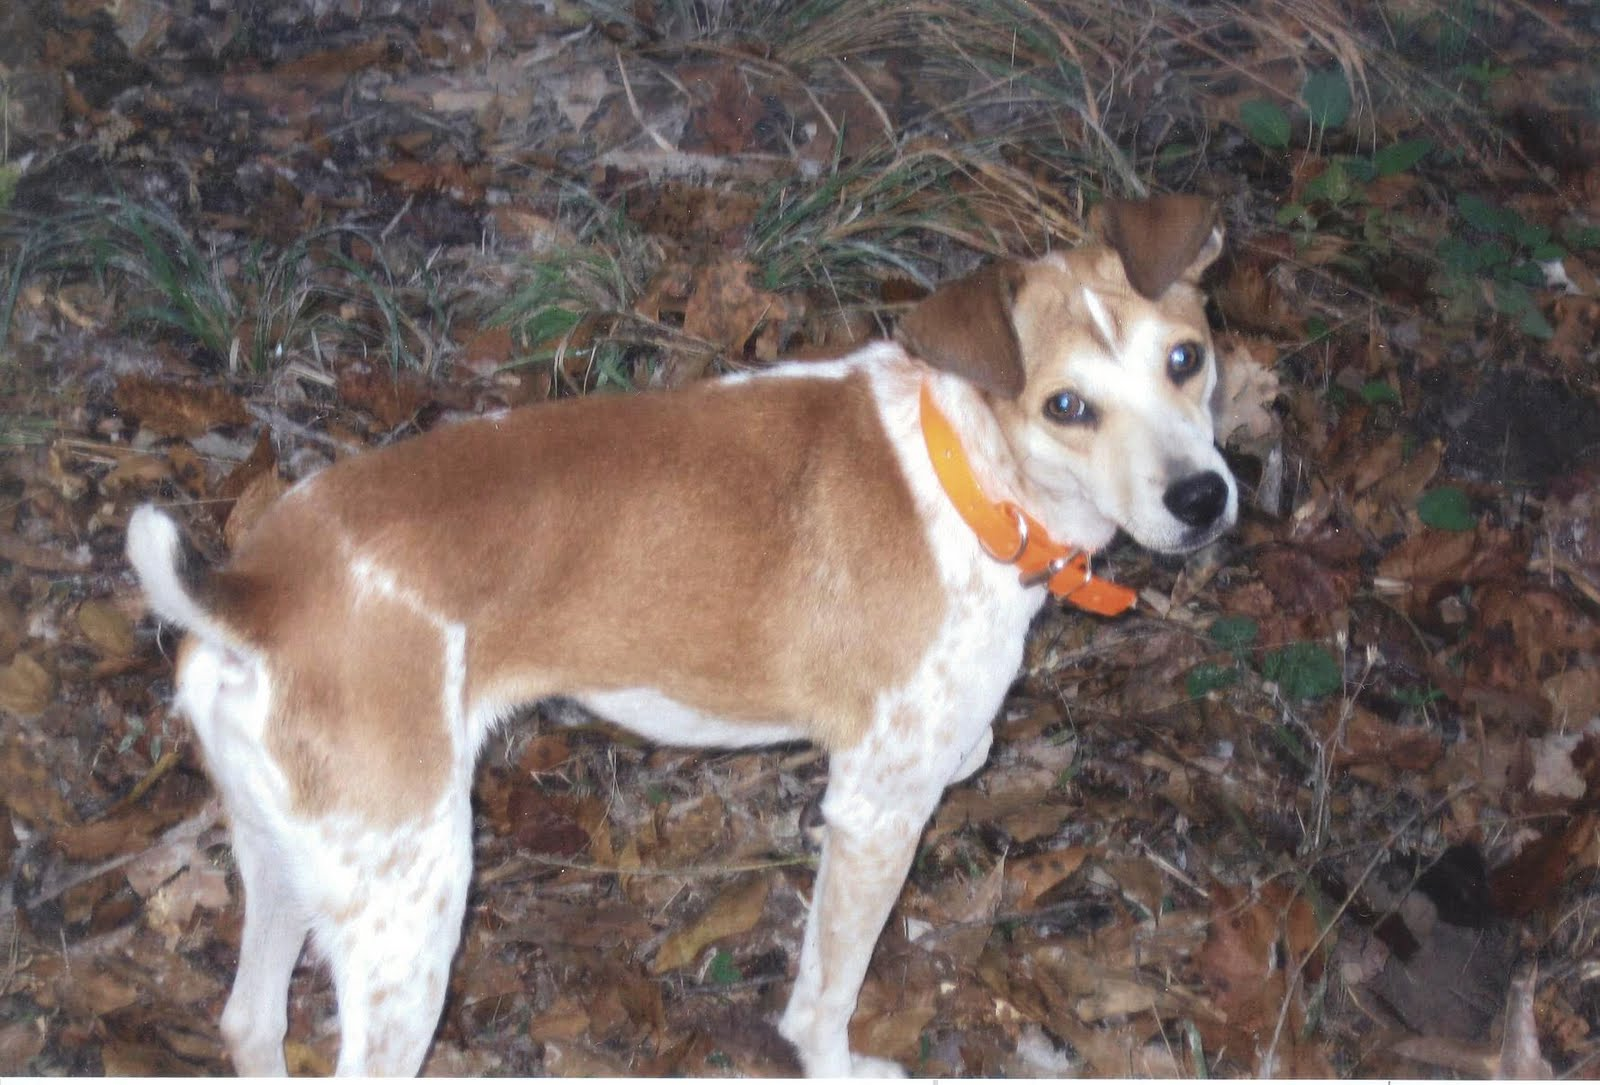 Galla Feist--Squirrel Dog Hunting Photo Gallery: Another Rowdy